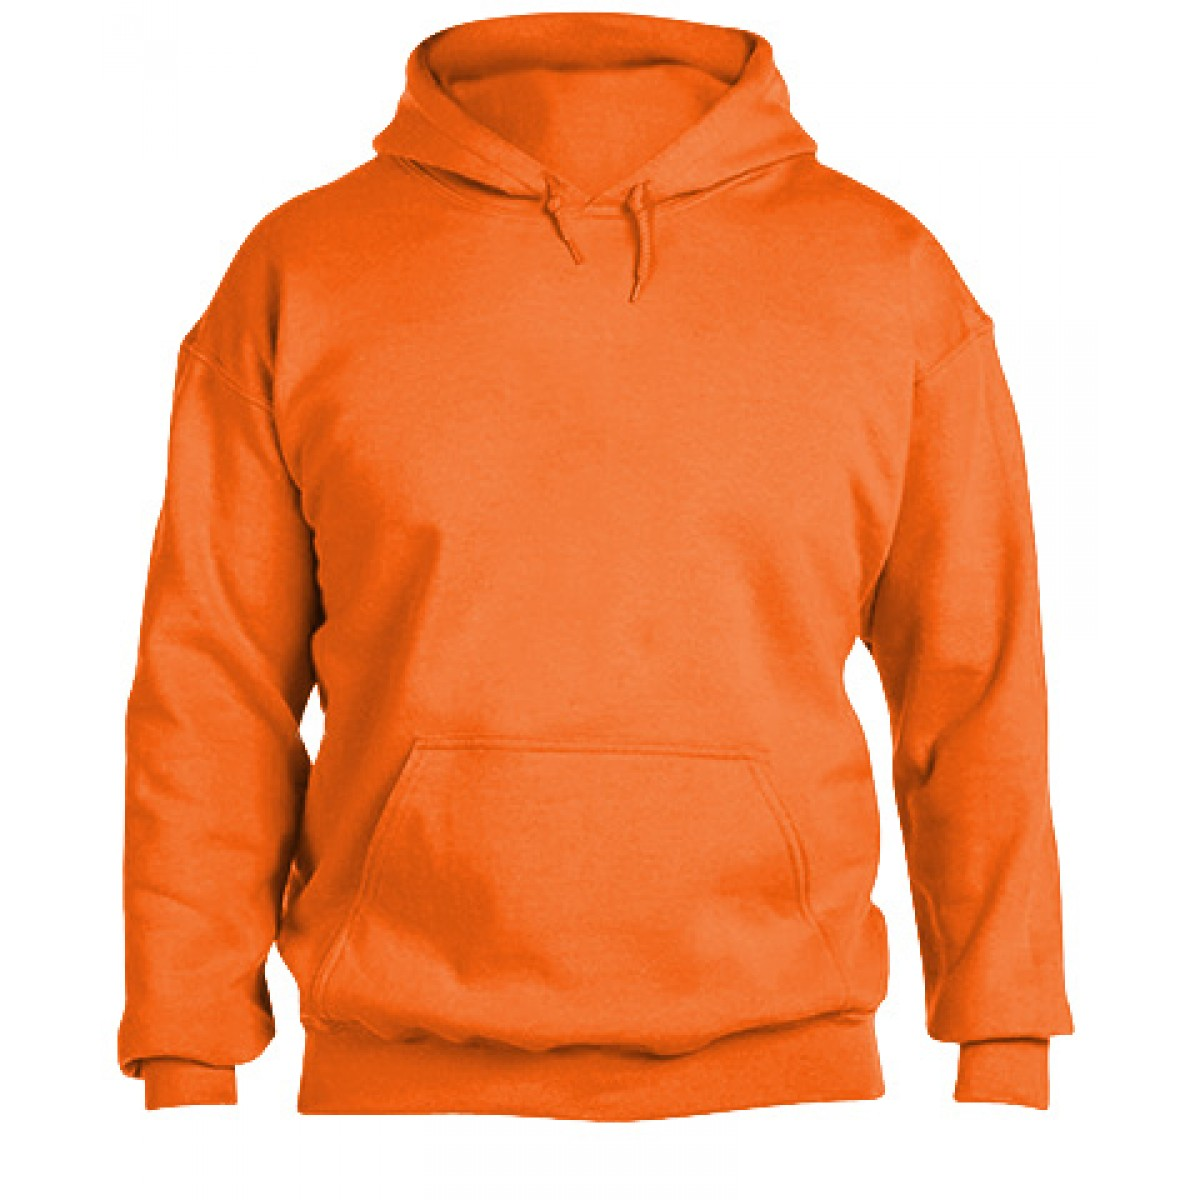 Hooded Sweatshirt 50/50 Heavy Blend -Safety Orange-M